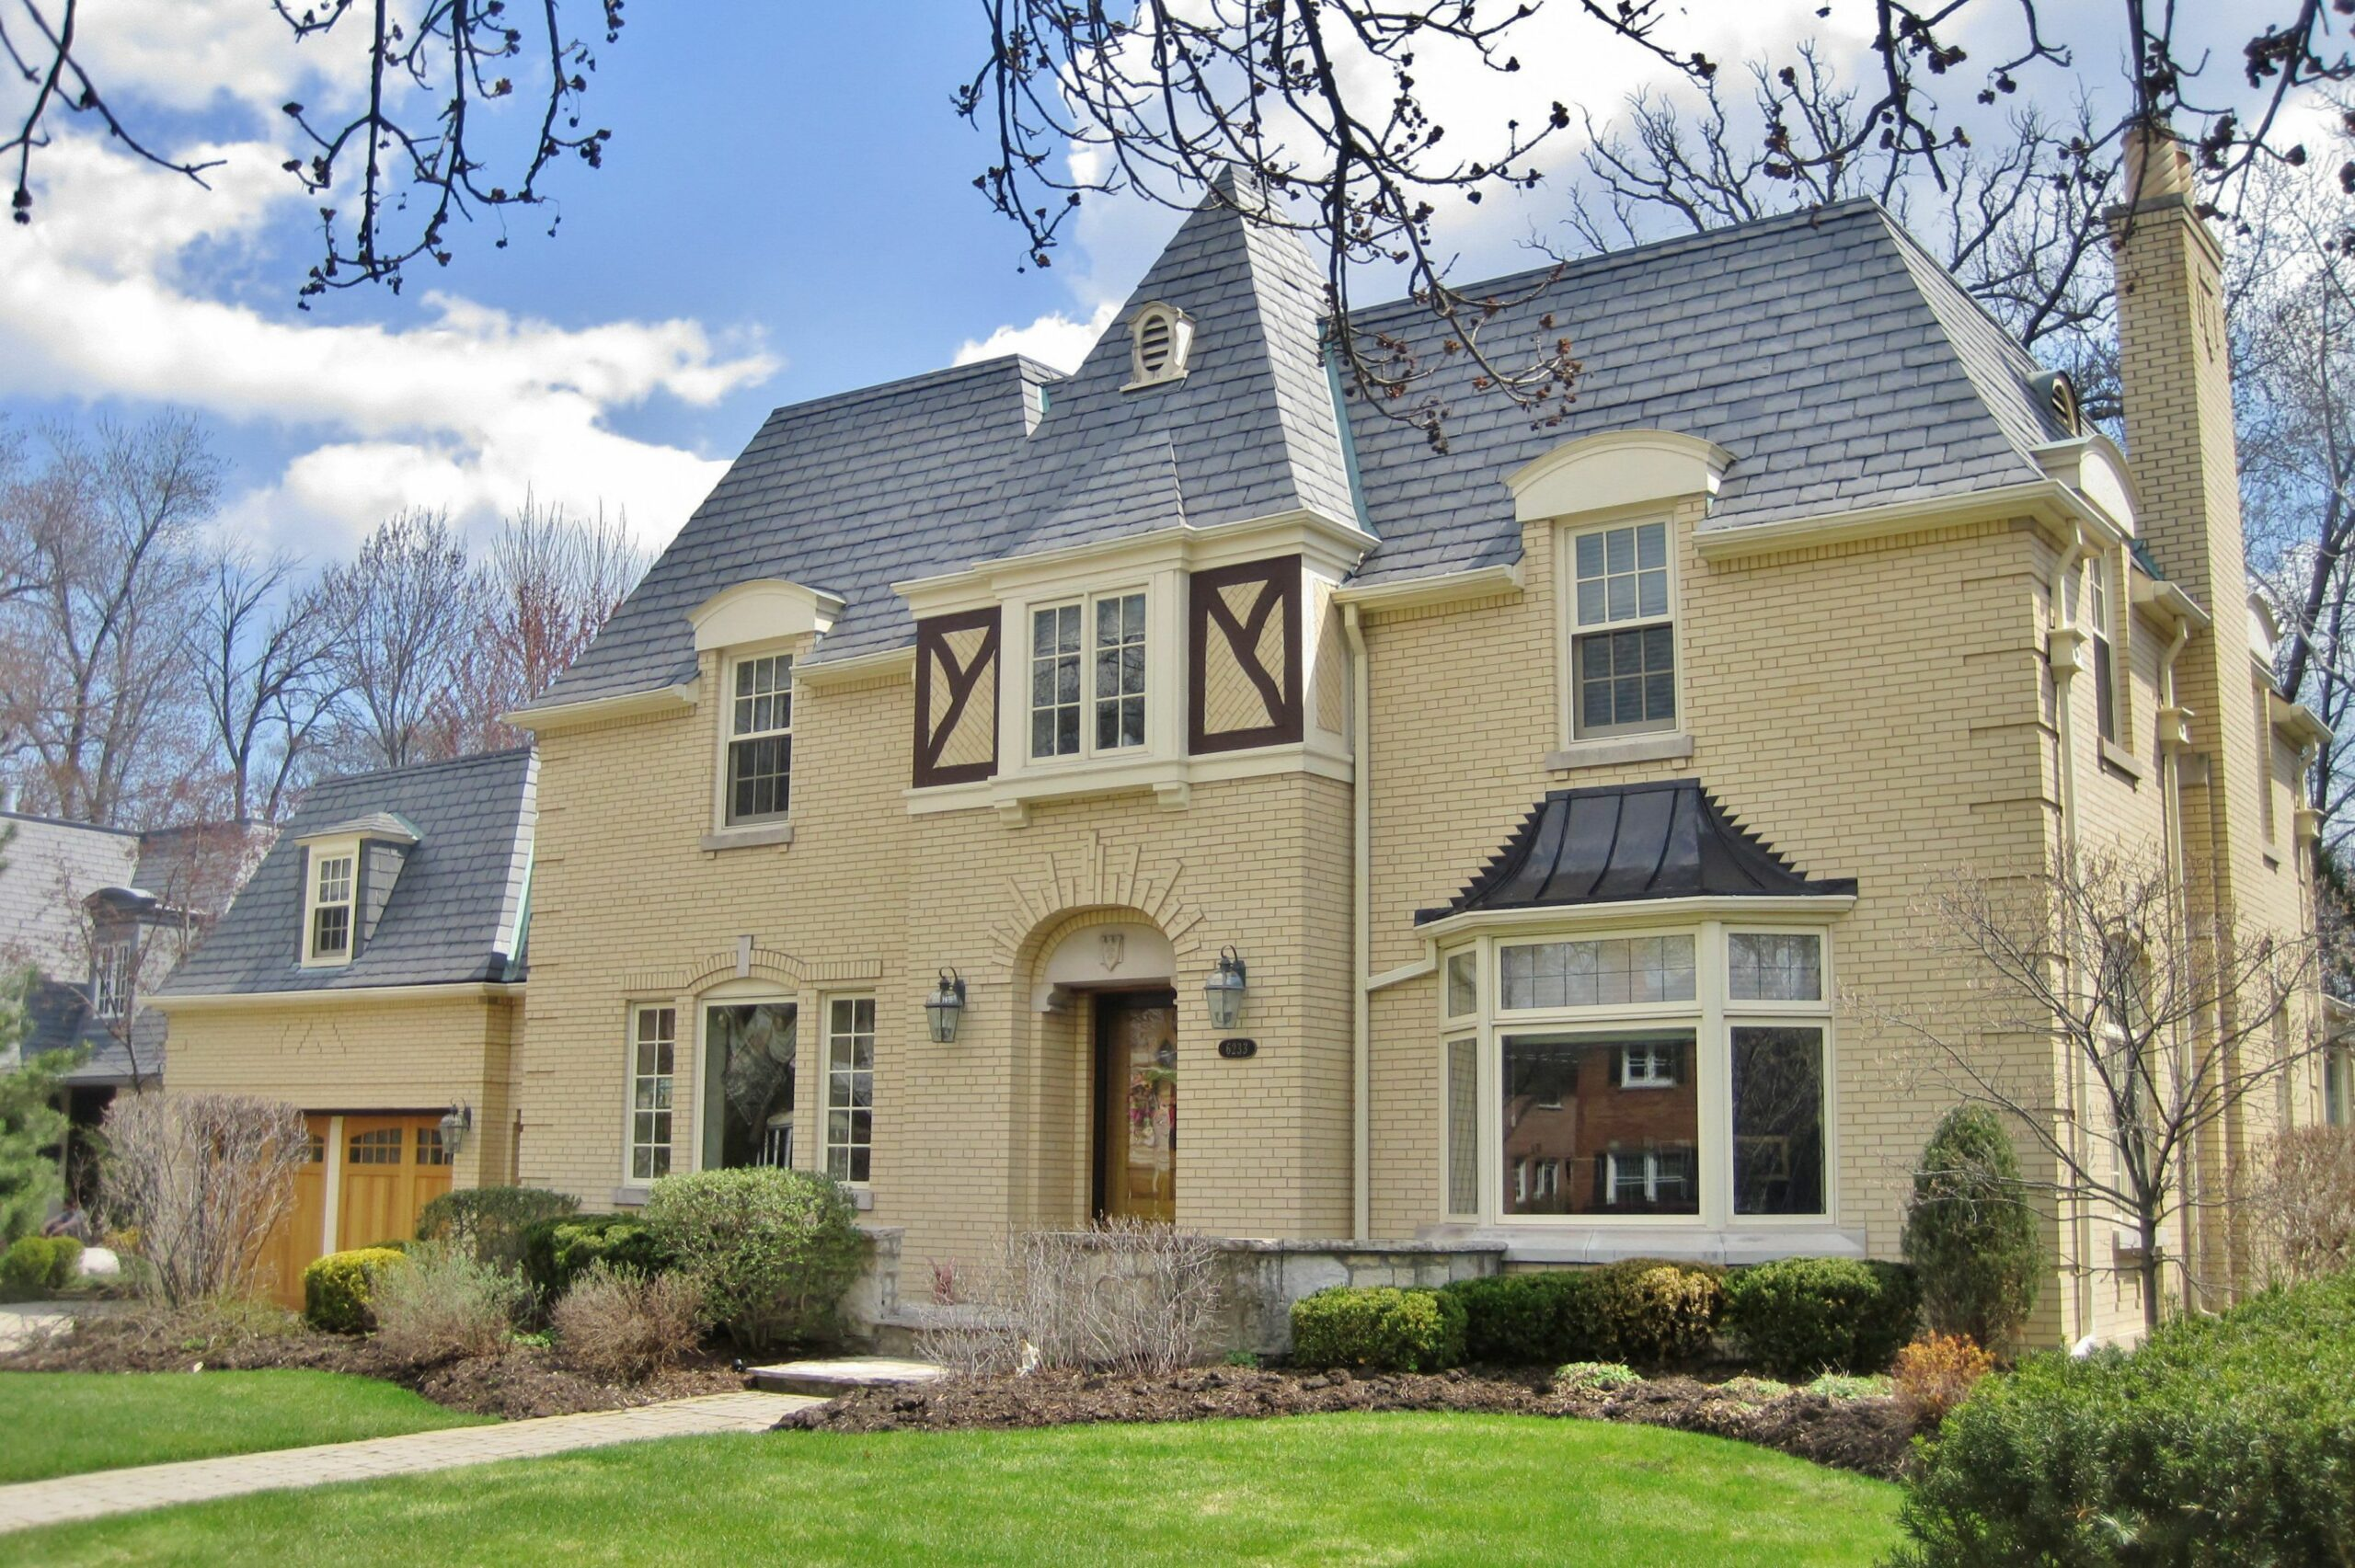 American Homes Inspired by French Designs